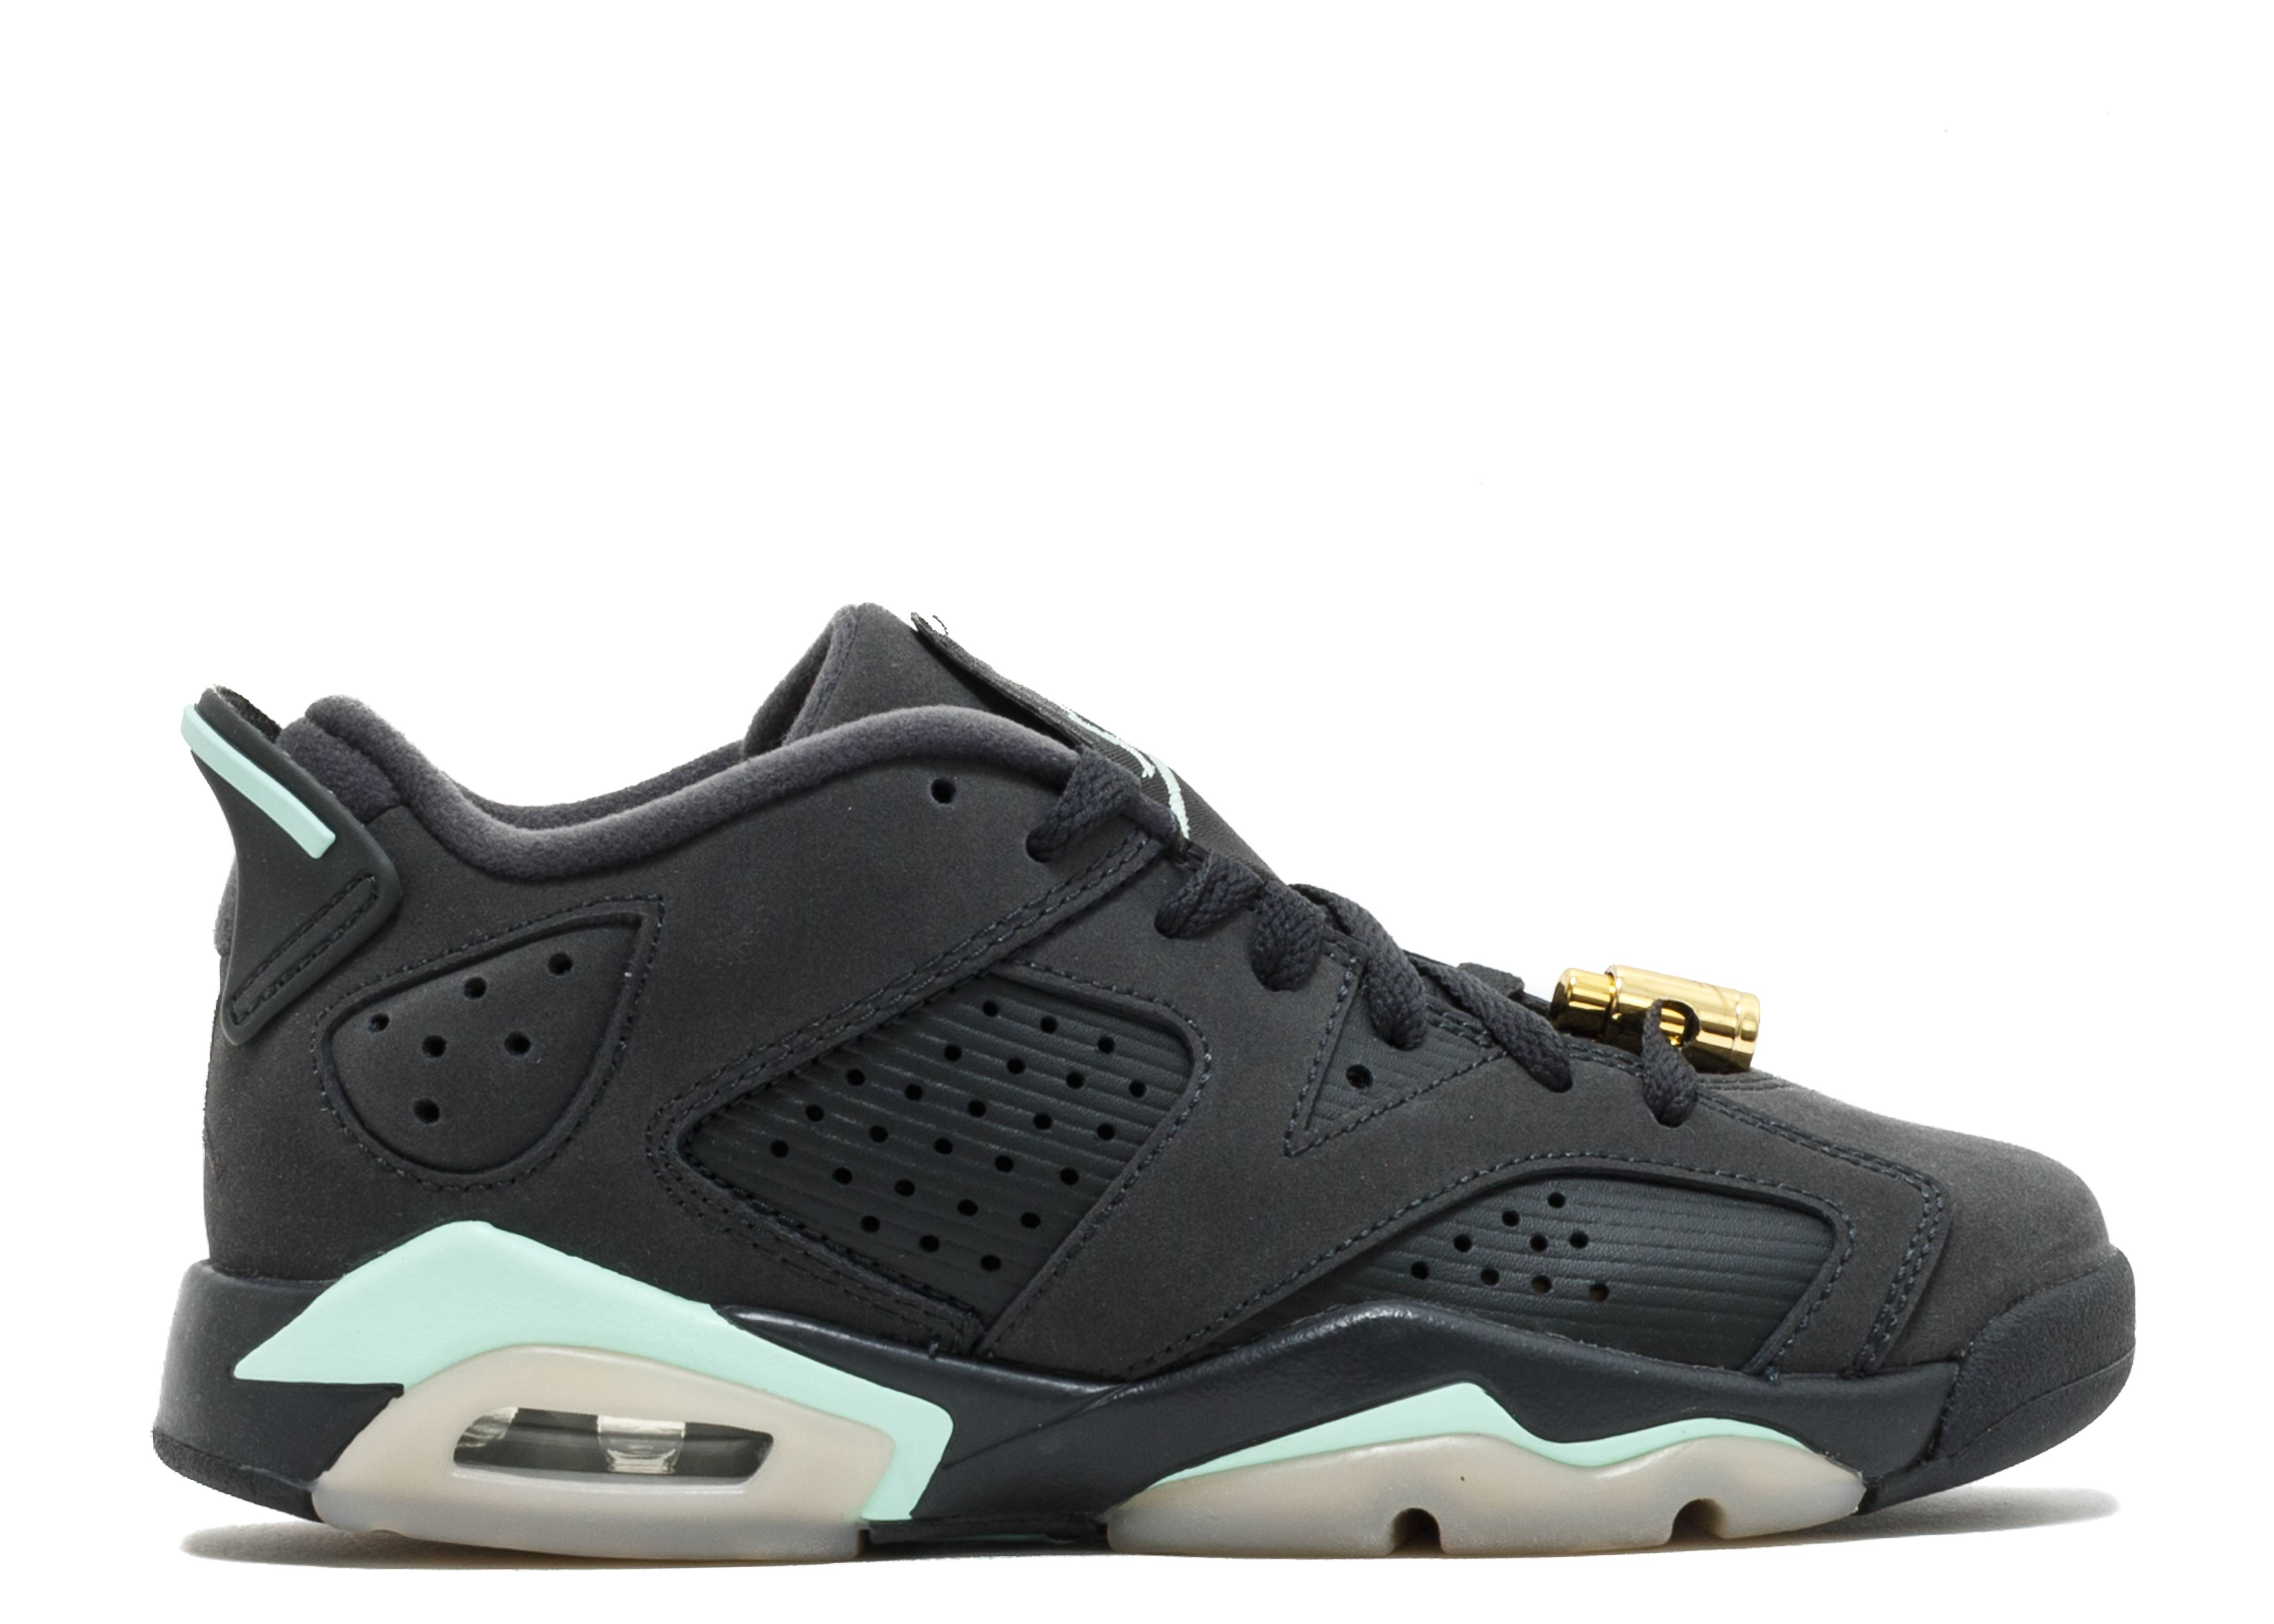 huge selection of 8e807 20871 air jordan 6 retro low gg